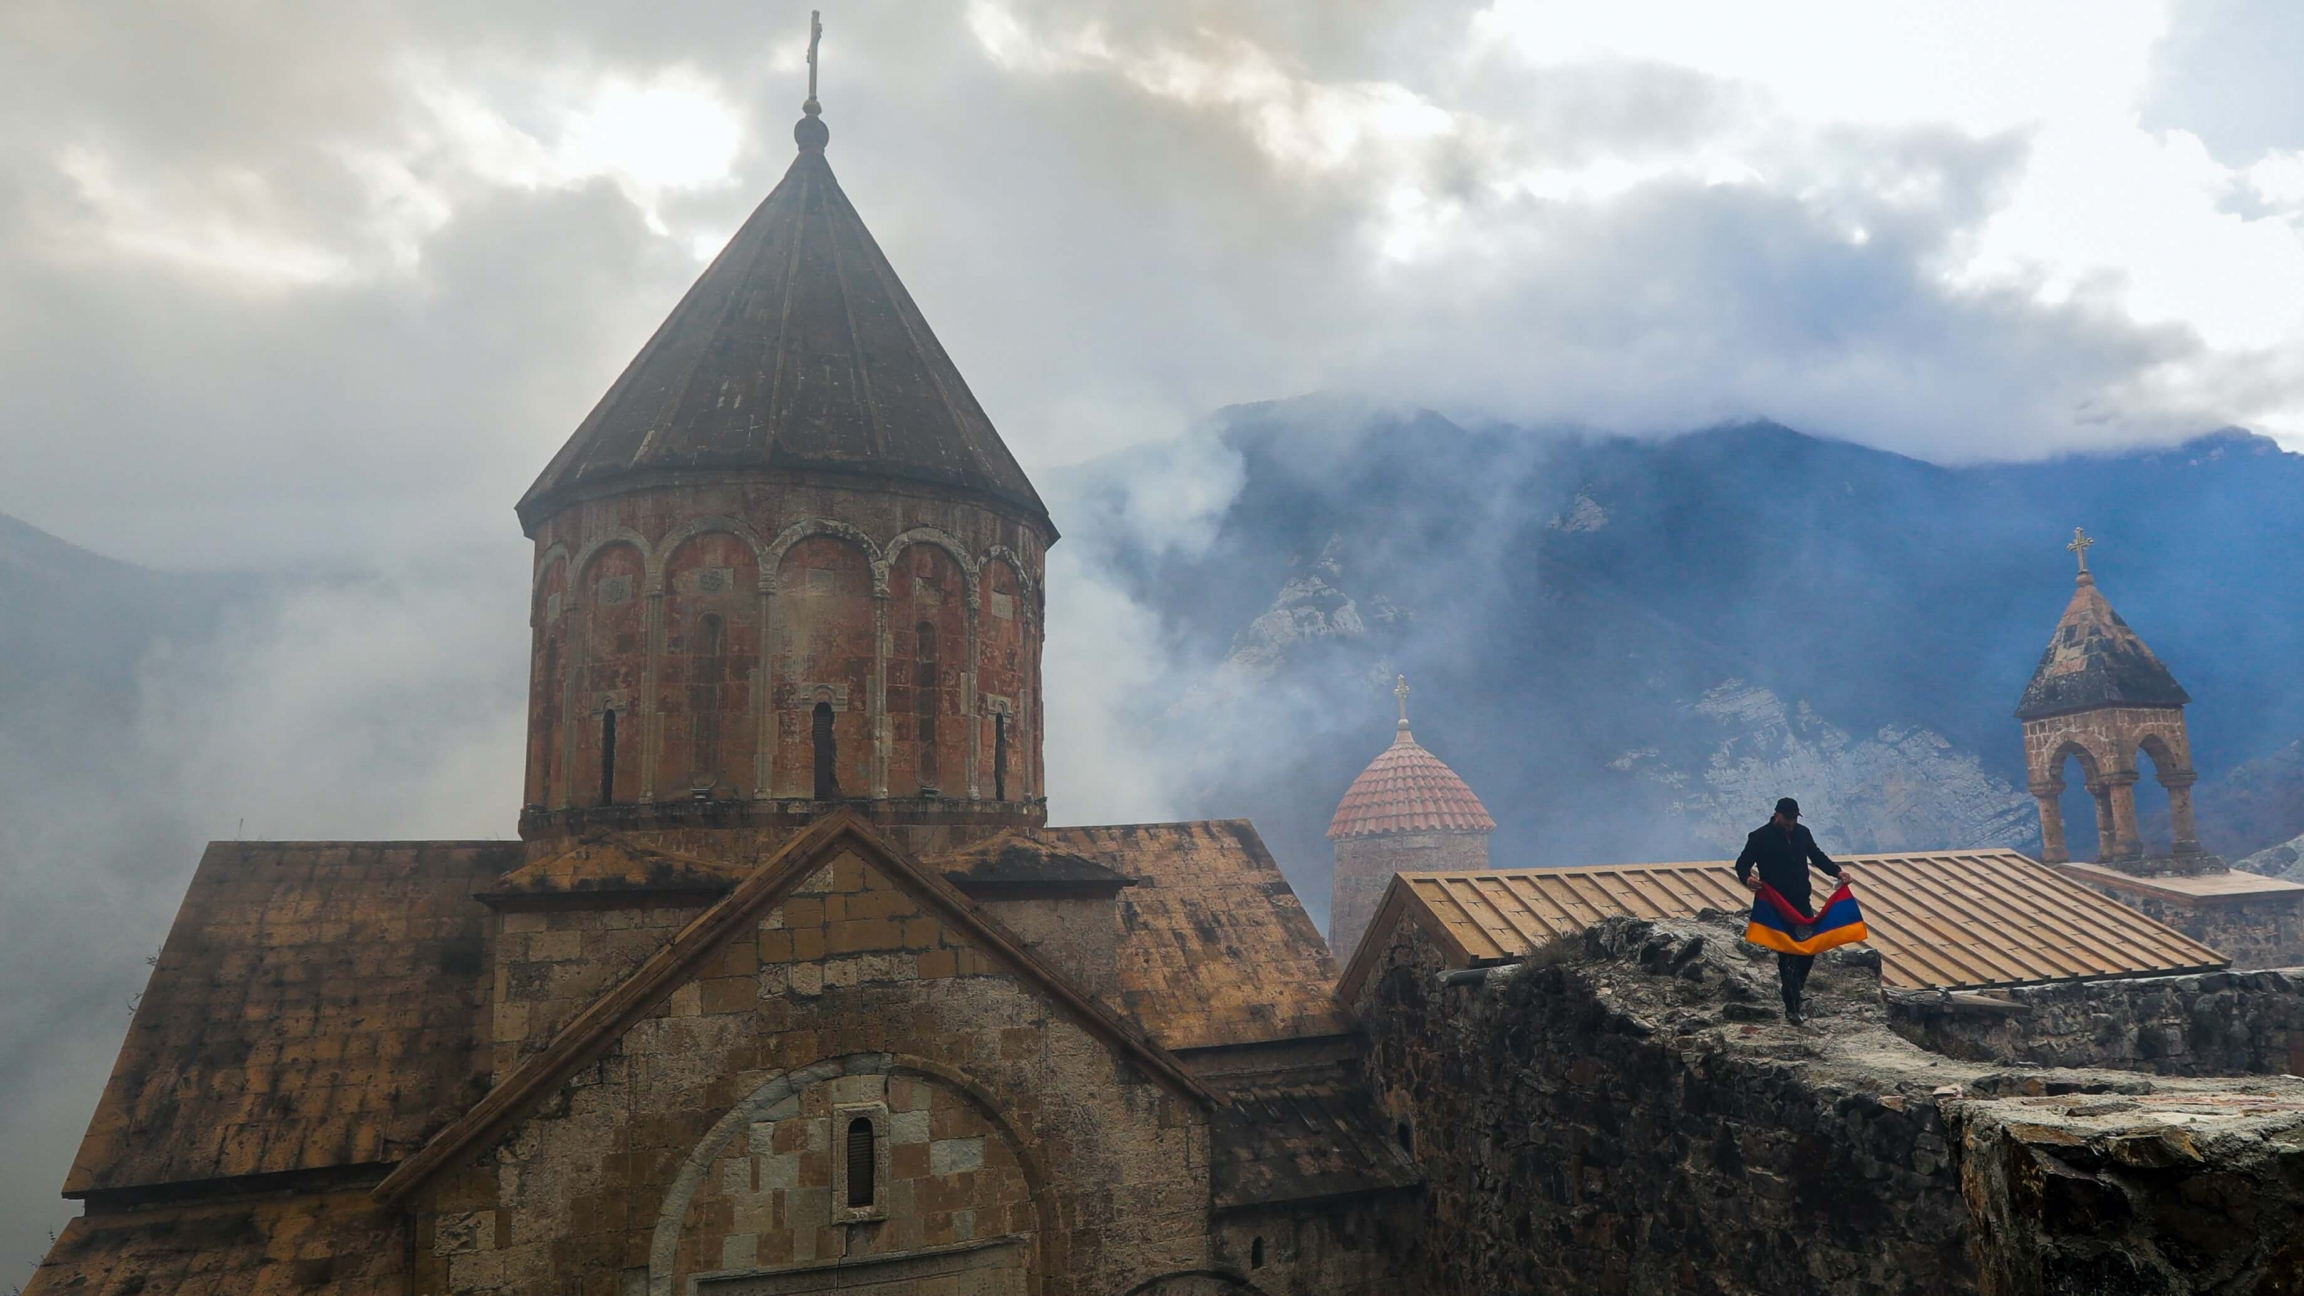 A man with an Armenian national flag visits a 12th-13th an old brick monastery surrounded by mountain vistas